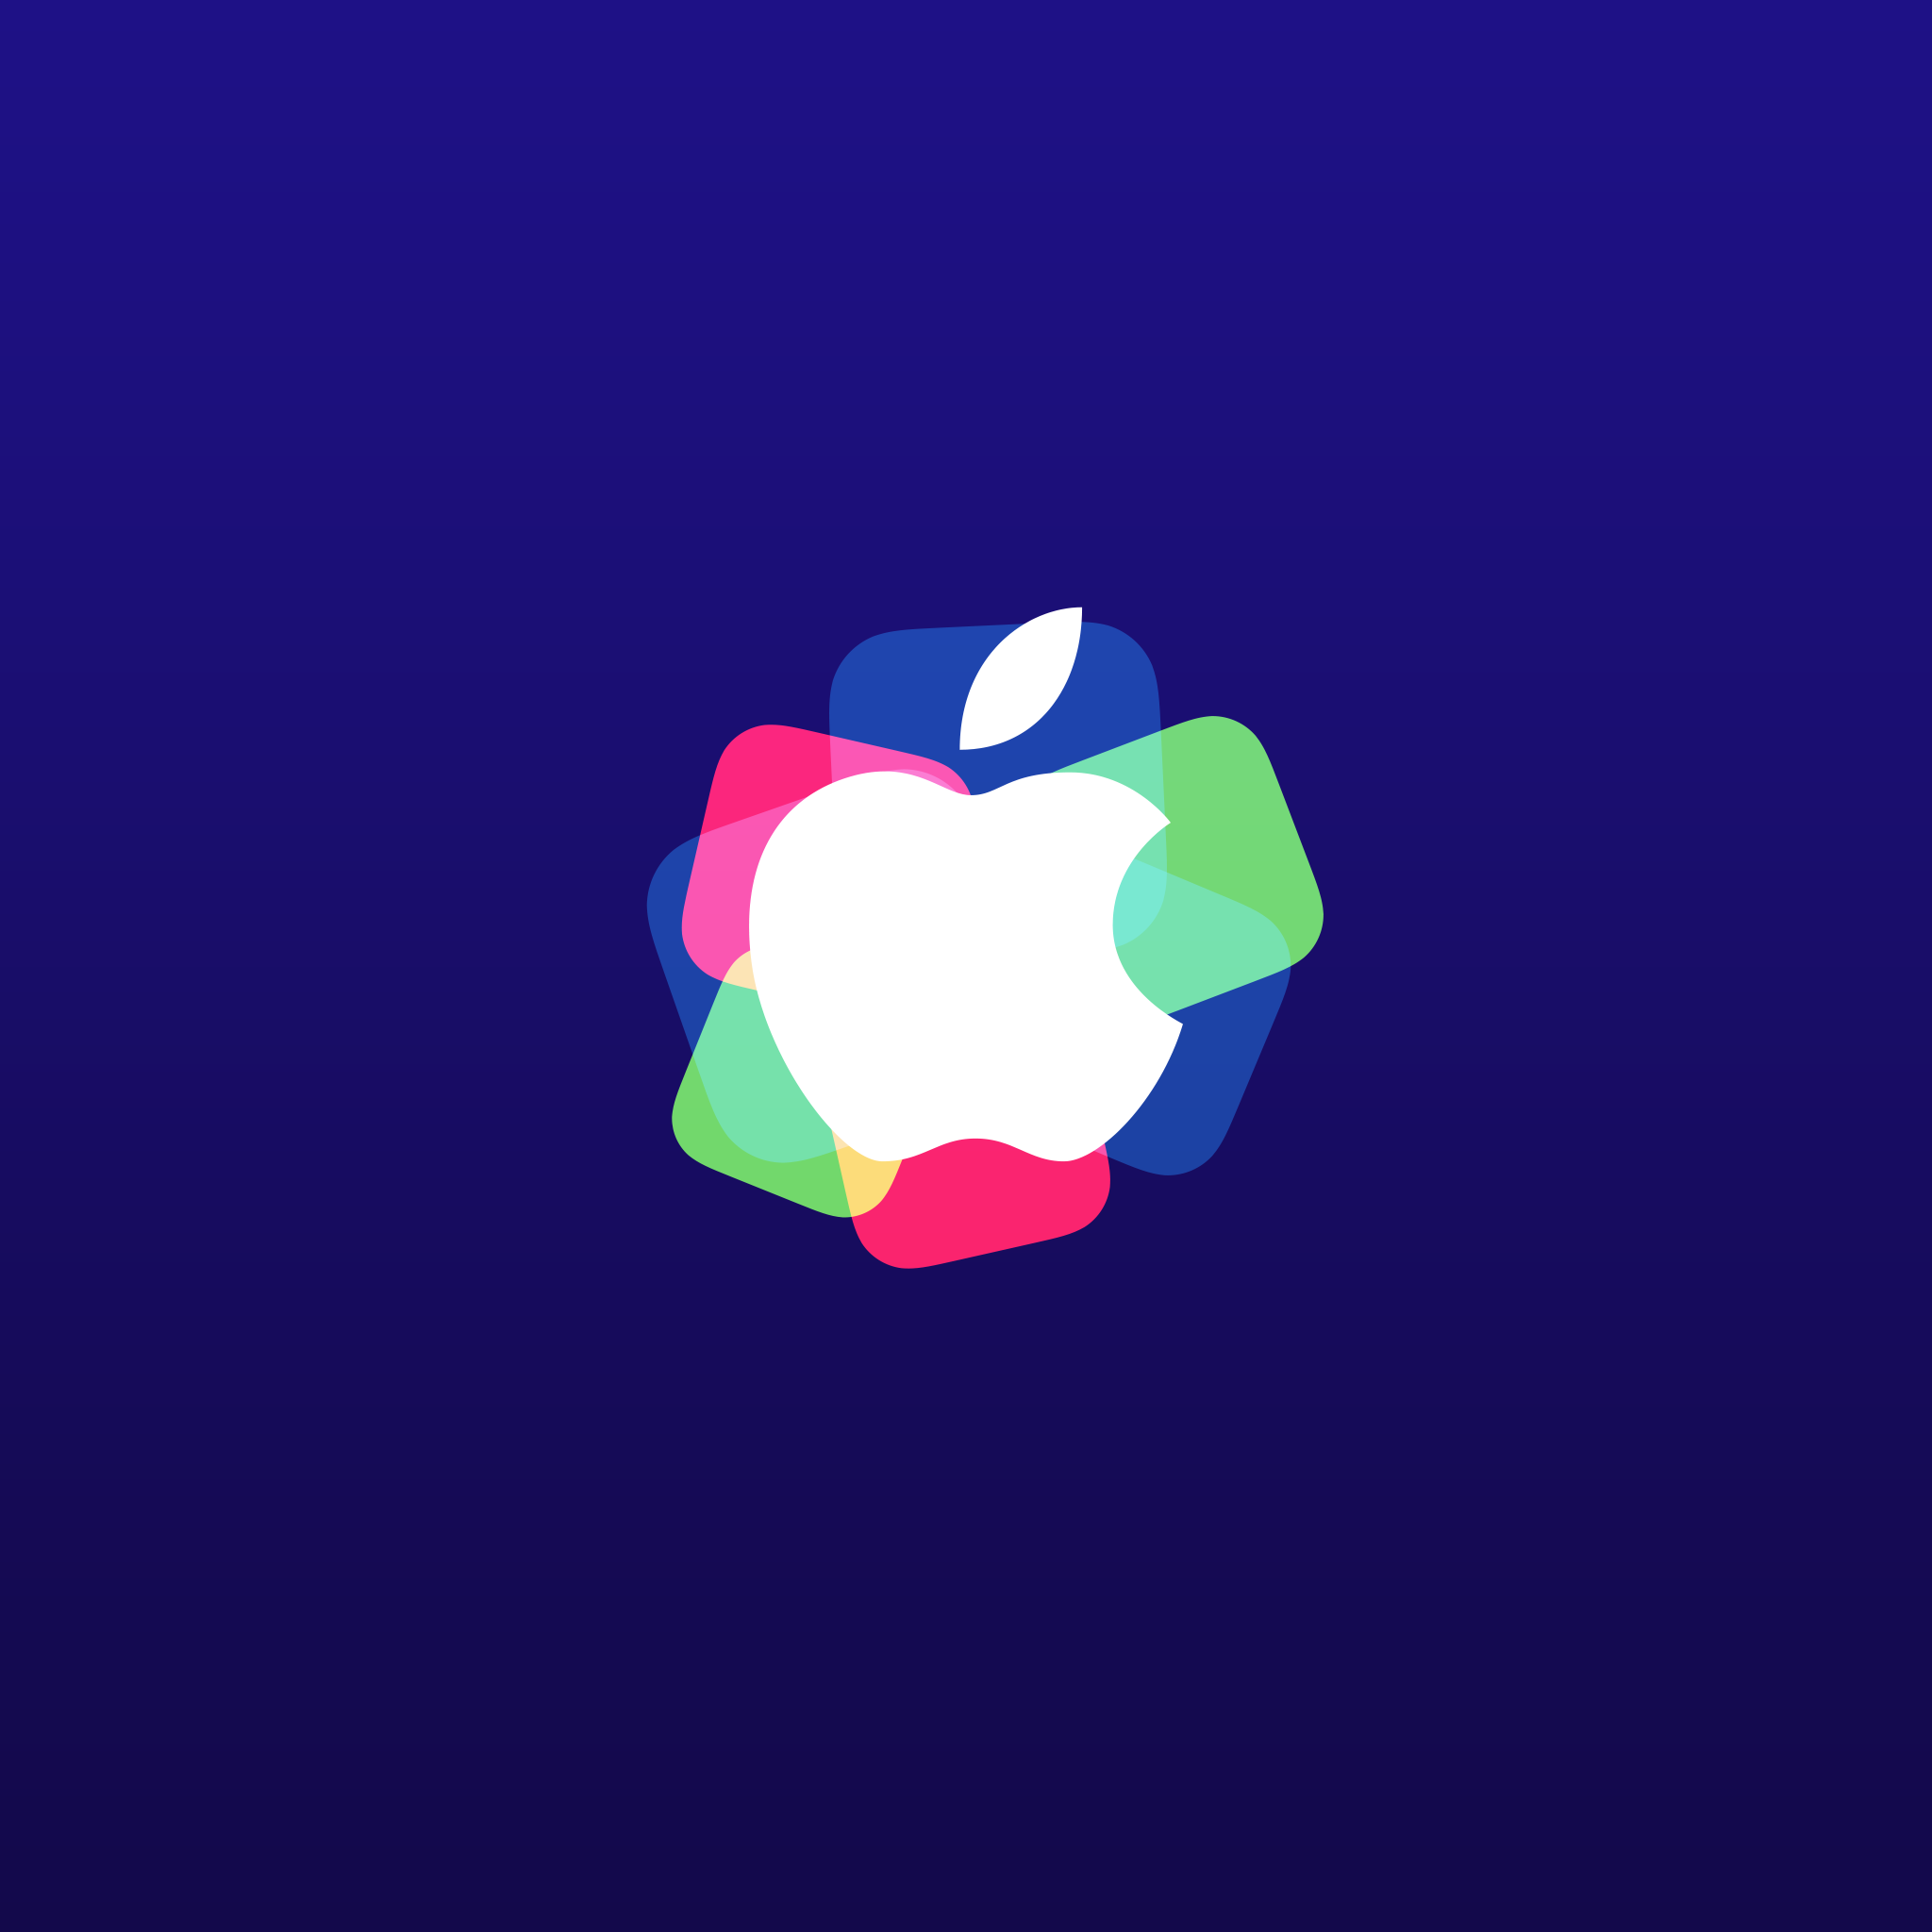 Apple-Event-September-9-Wallpaper-bart172-iPad